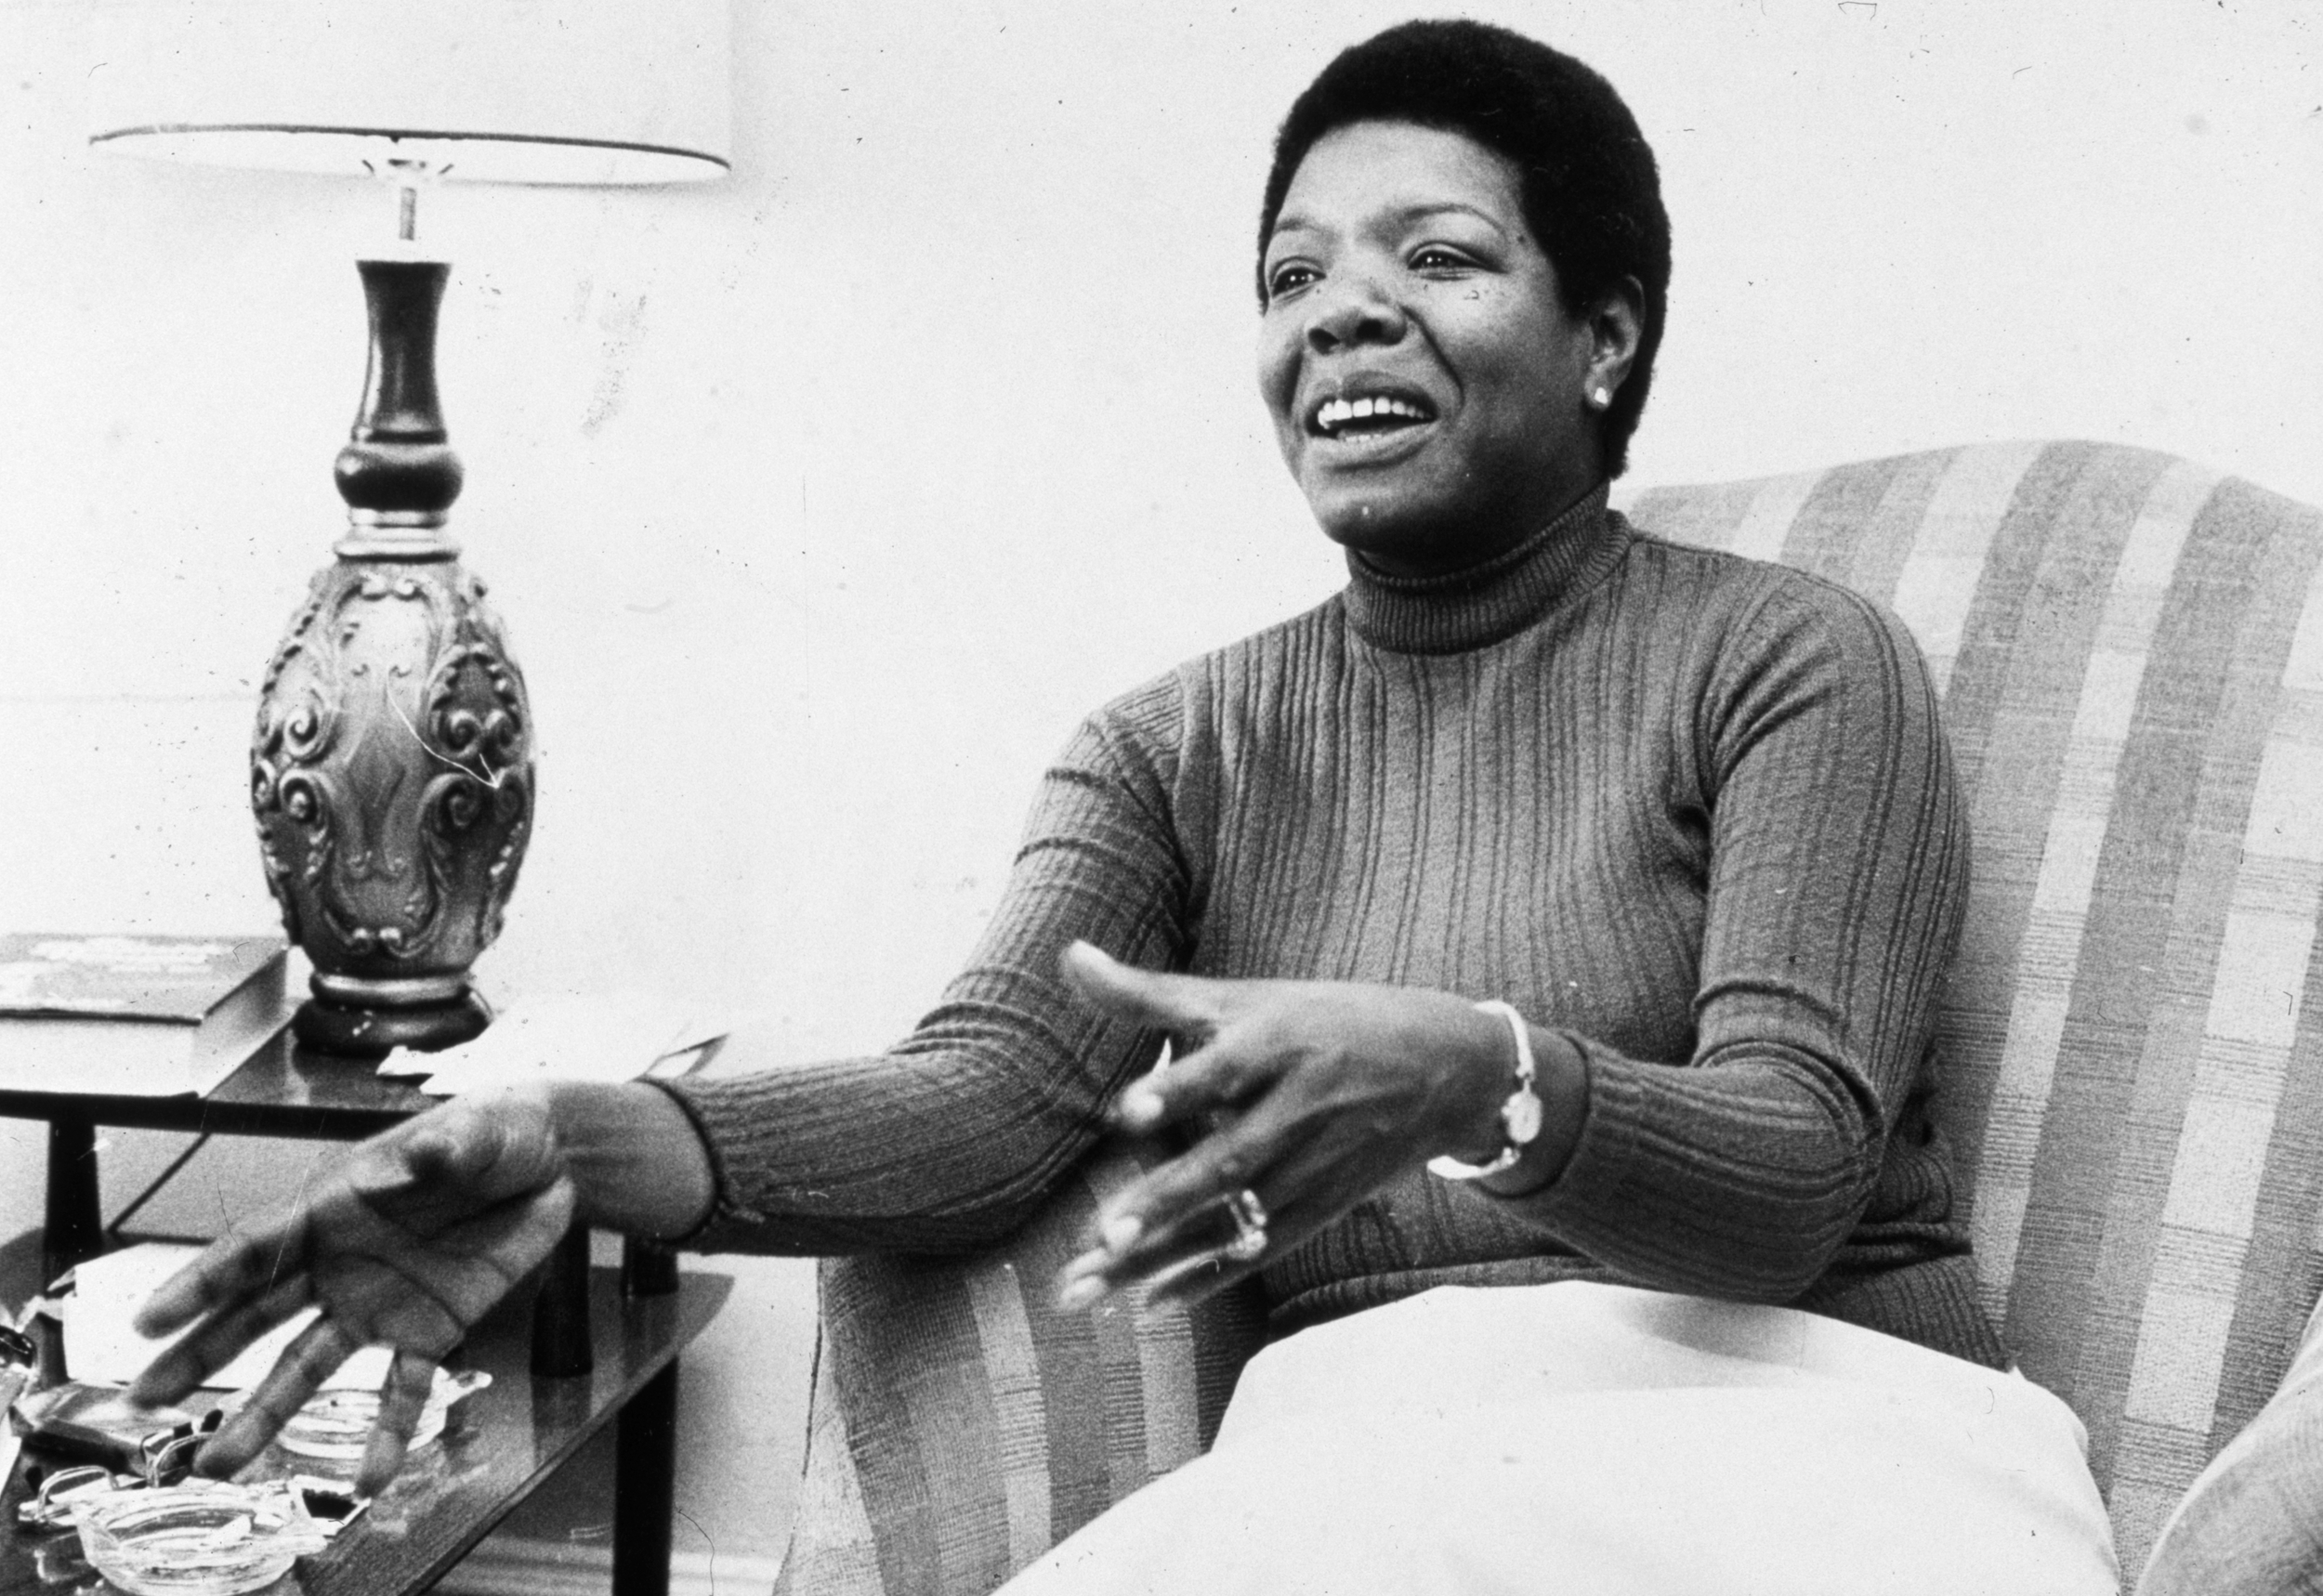 the lie by maya angelou Essays - largest database of quality sample essays and research papers on the lie by maya angelou.